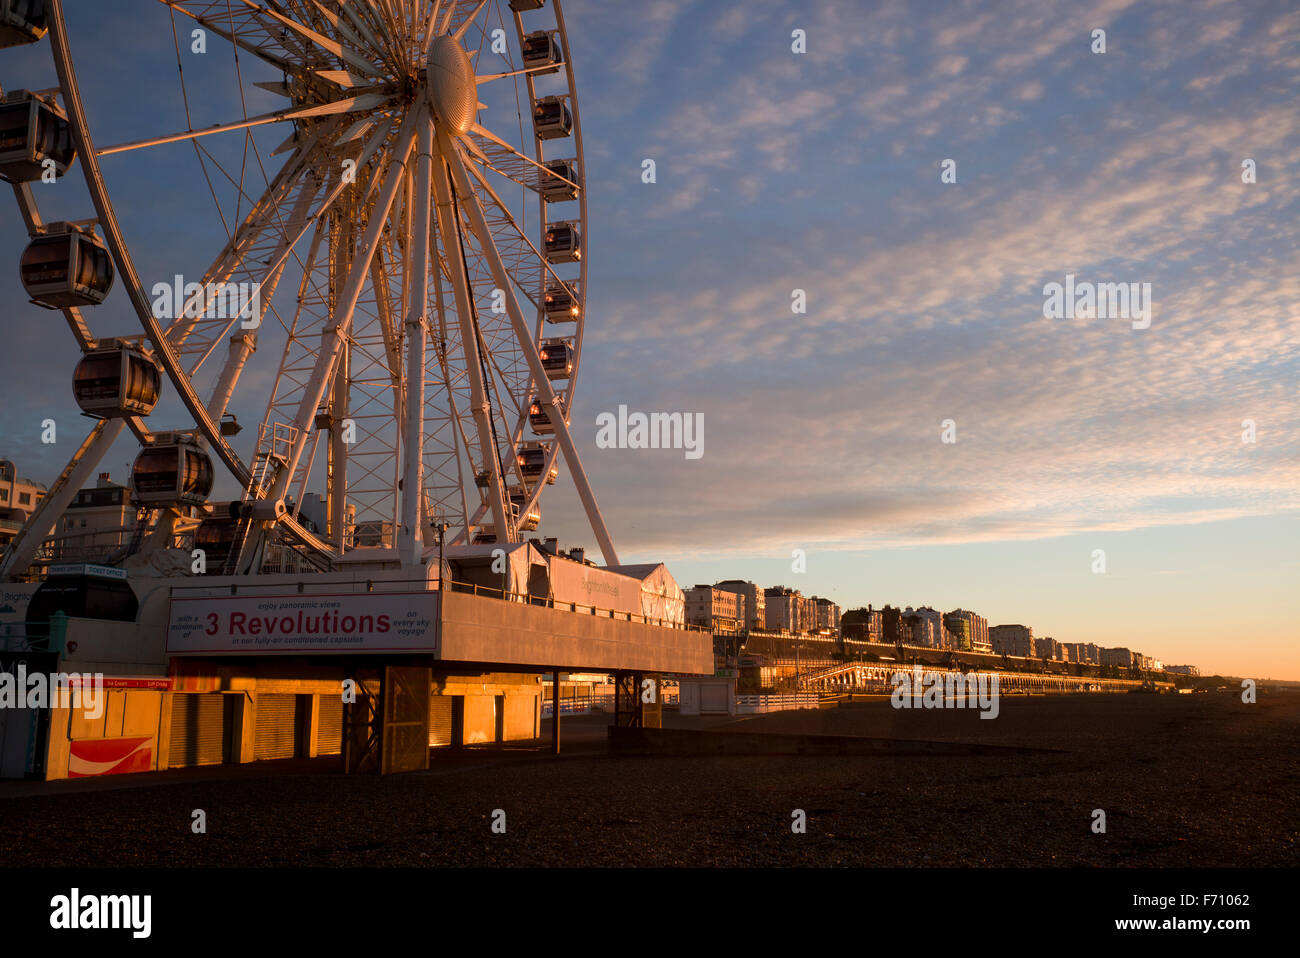 Brighton ferris wheel and Kemptown seafront illuminated by the rising sun - Stock Image